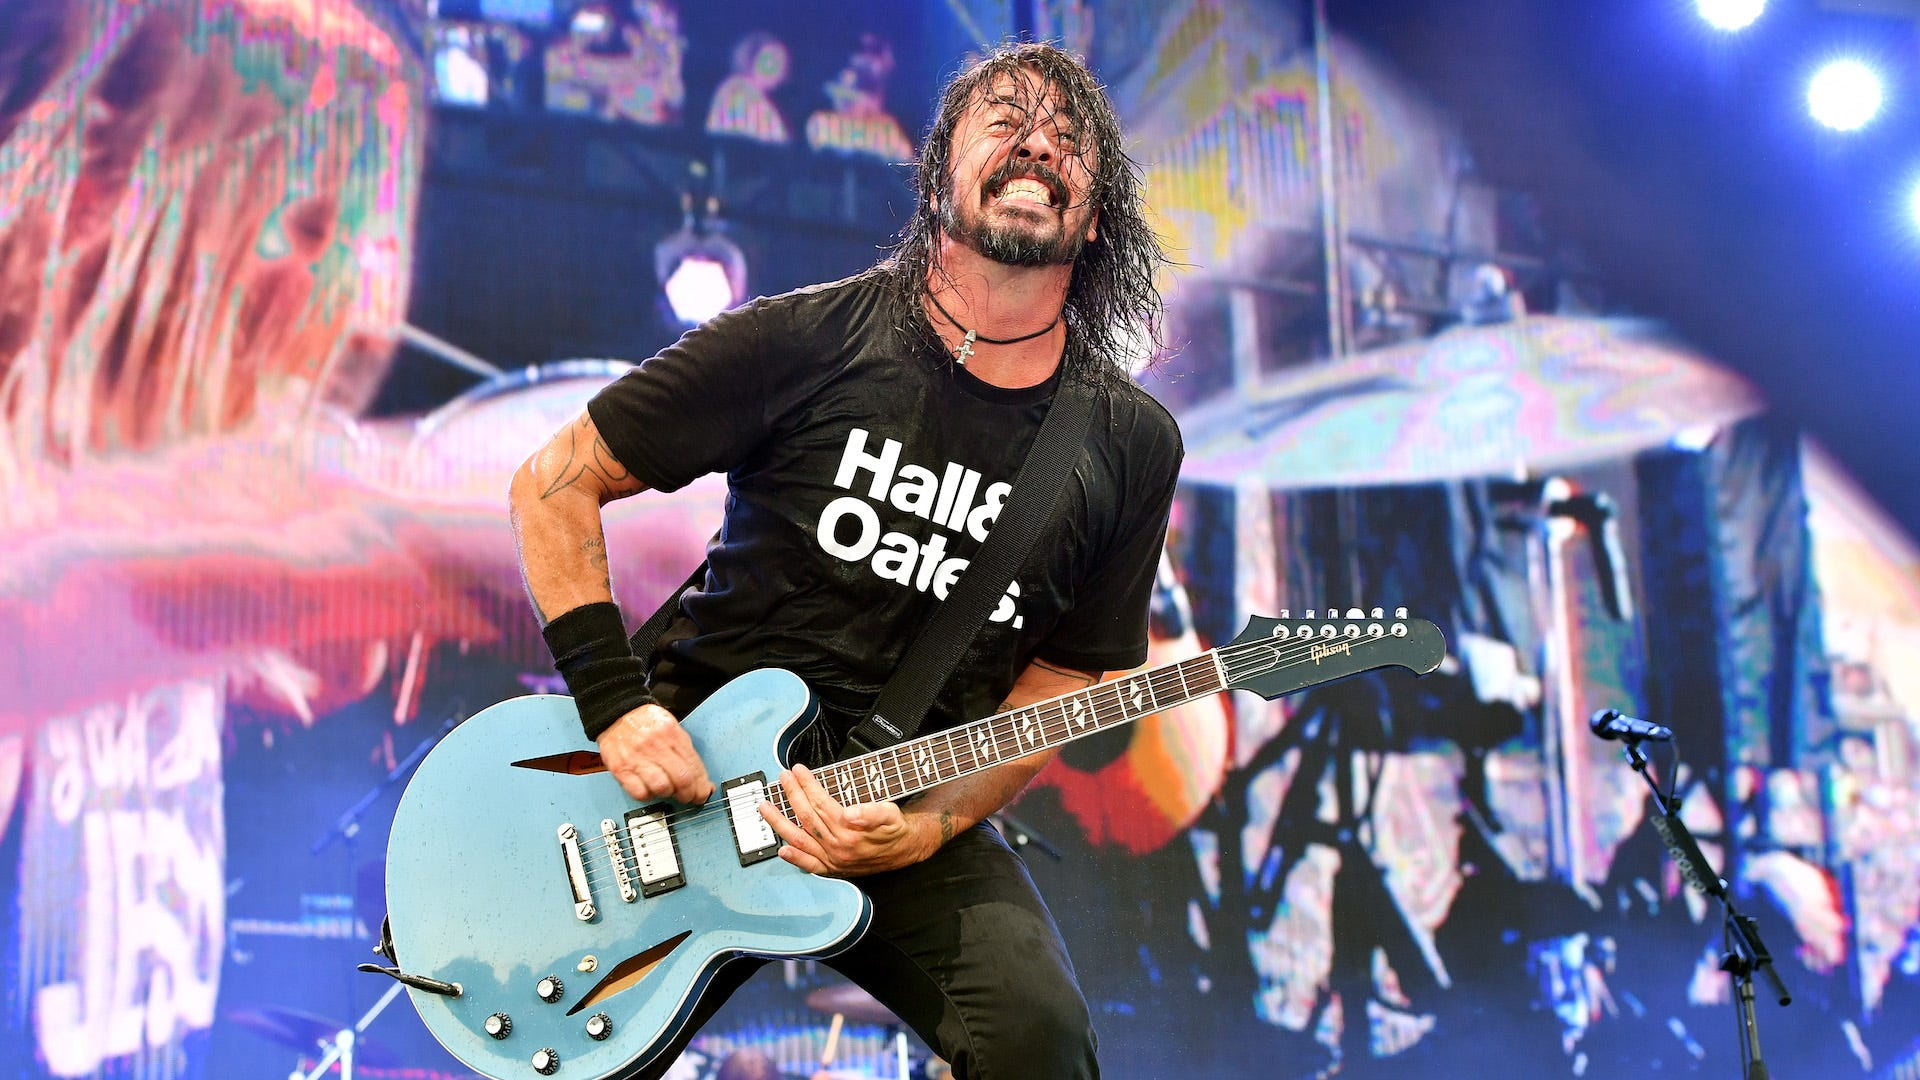 Our 5 favorite items of Foo Fighters merch now available on Amazon